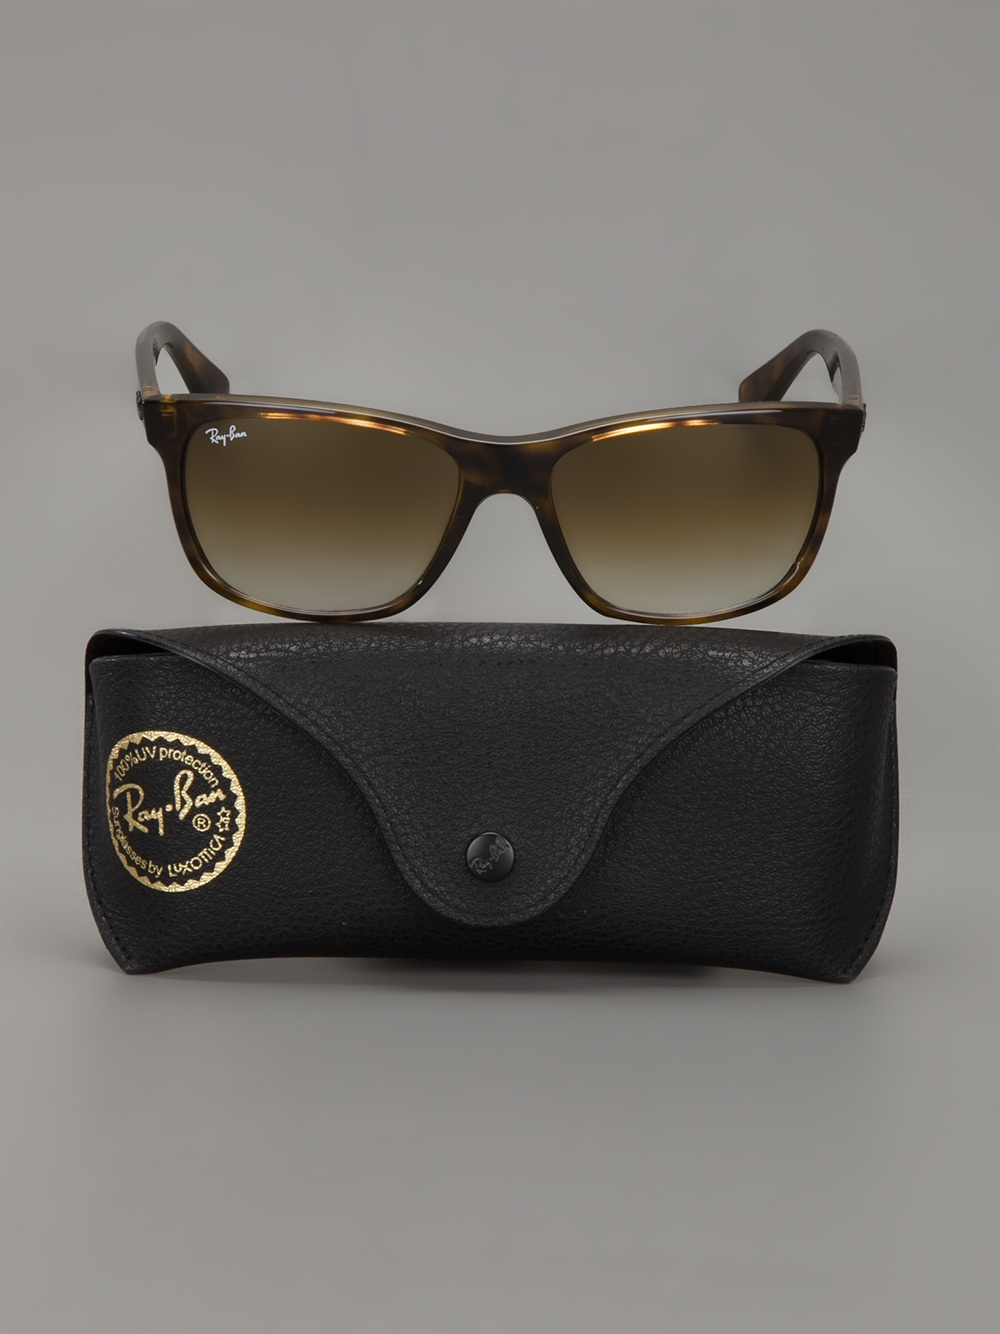 Ray Ban Tortoise Shell Sunglasses In Brown For Men Lyst